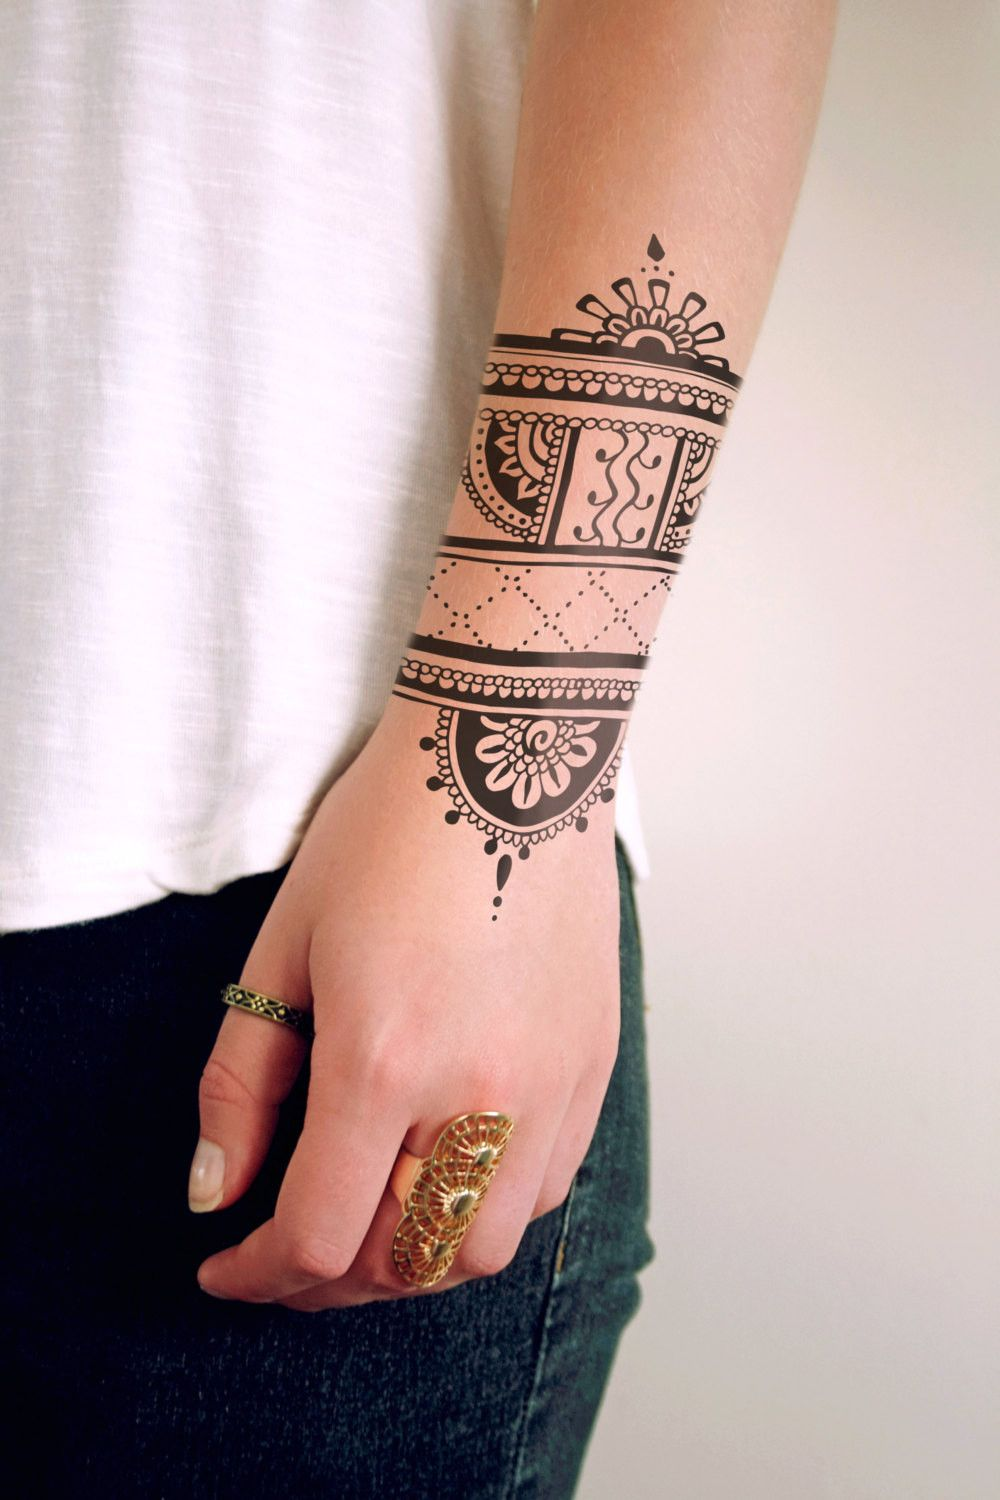 Temporary Tattoo Ink Like Henna: Henna Inspired Temporary Tattoo